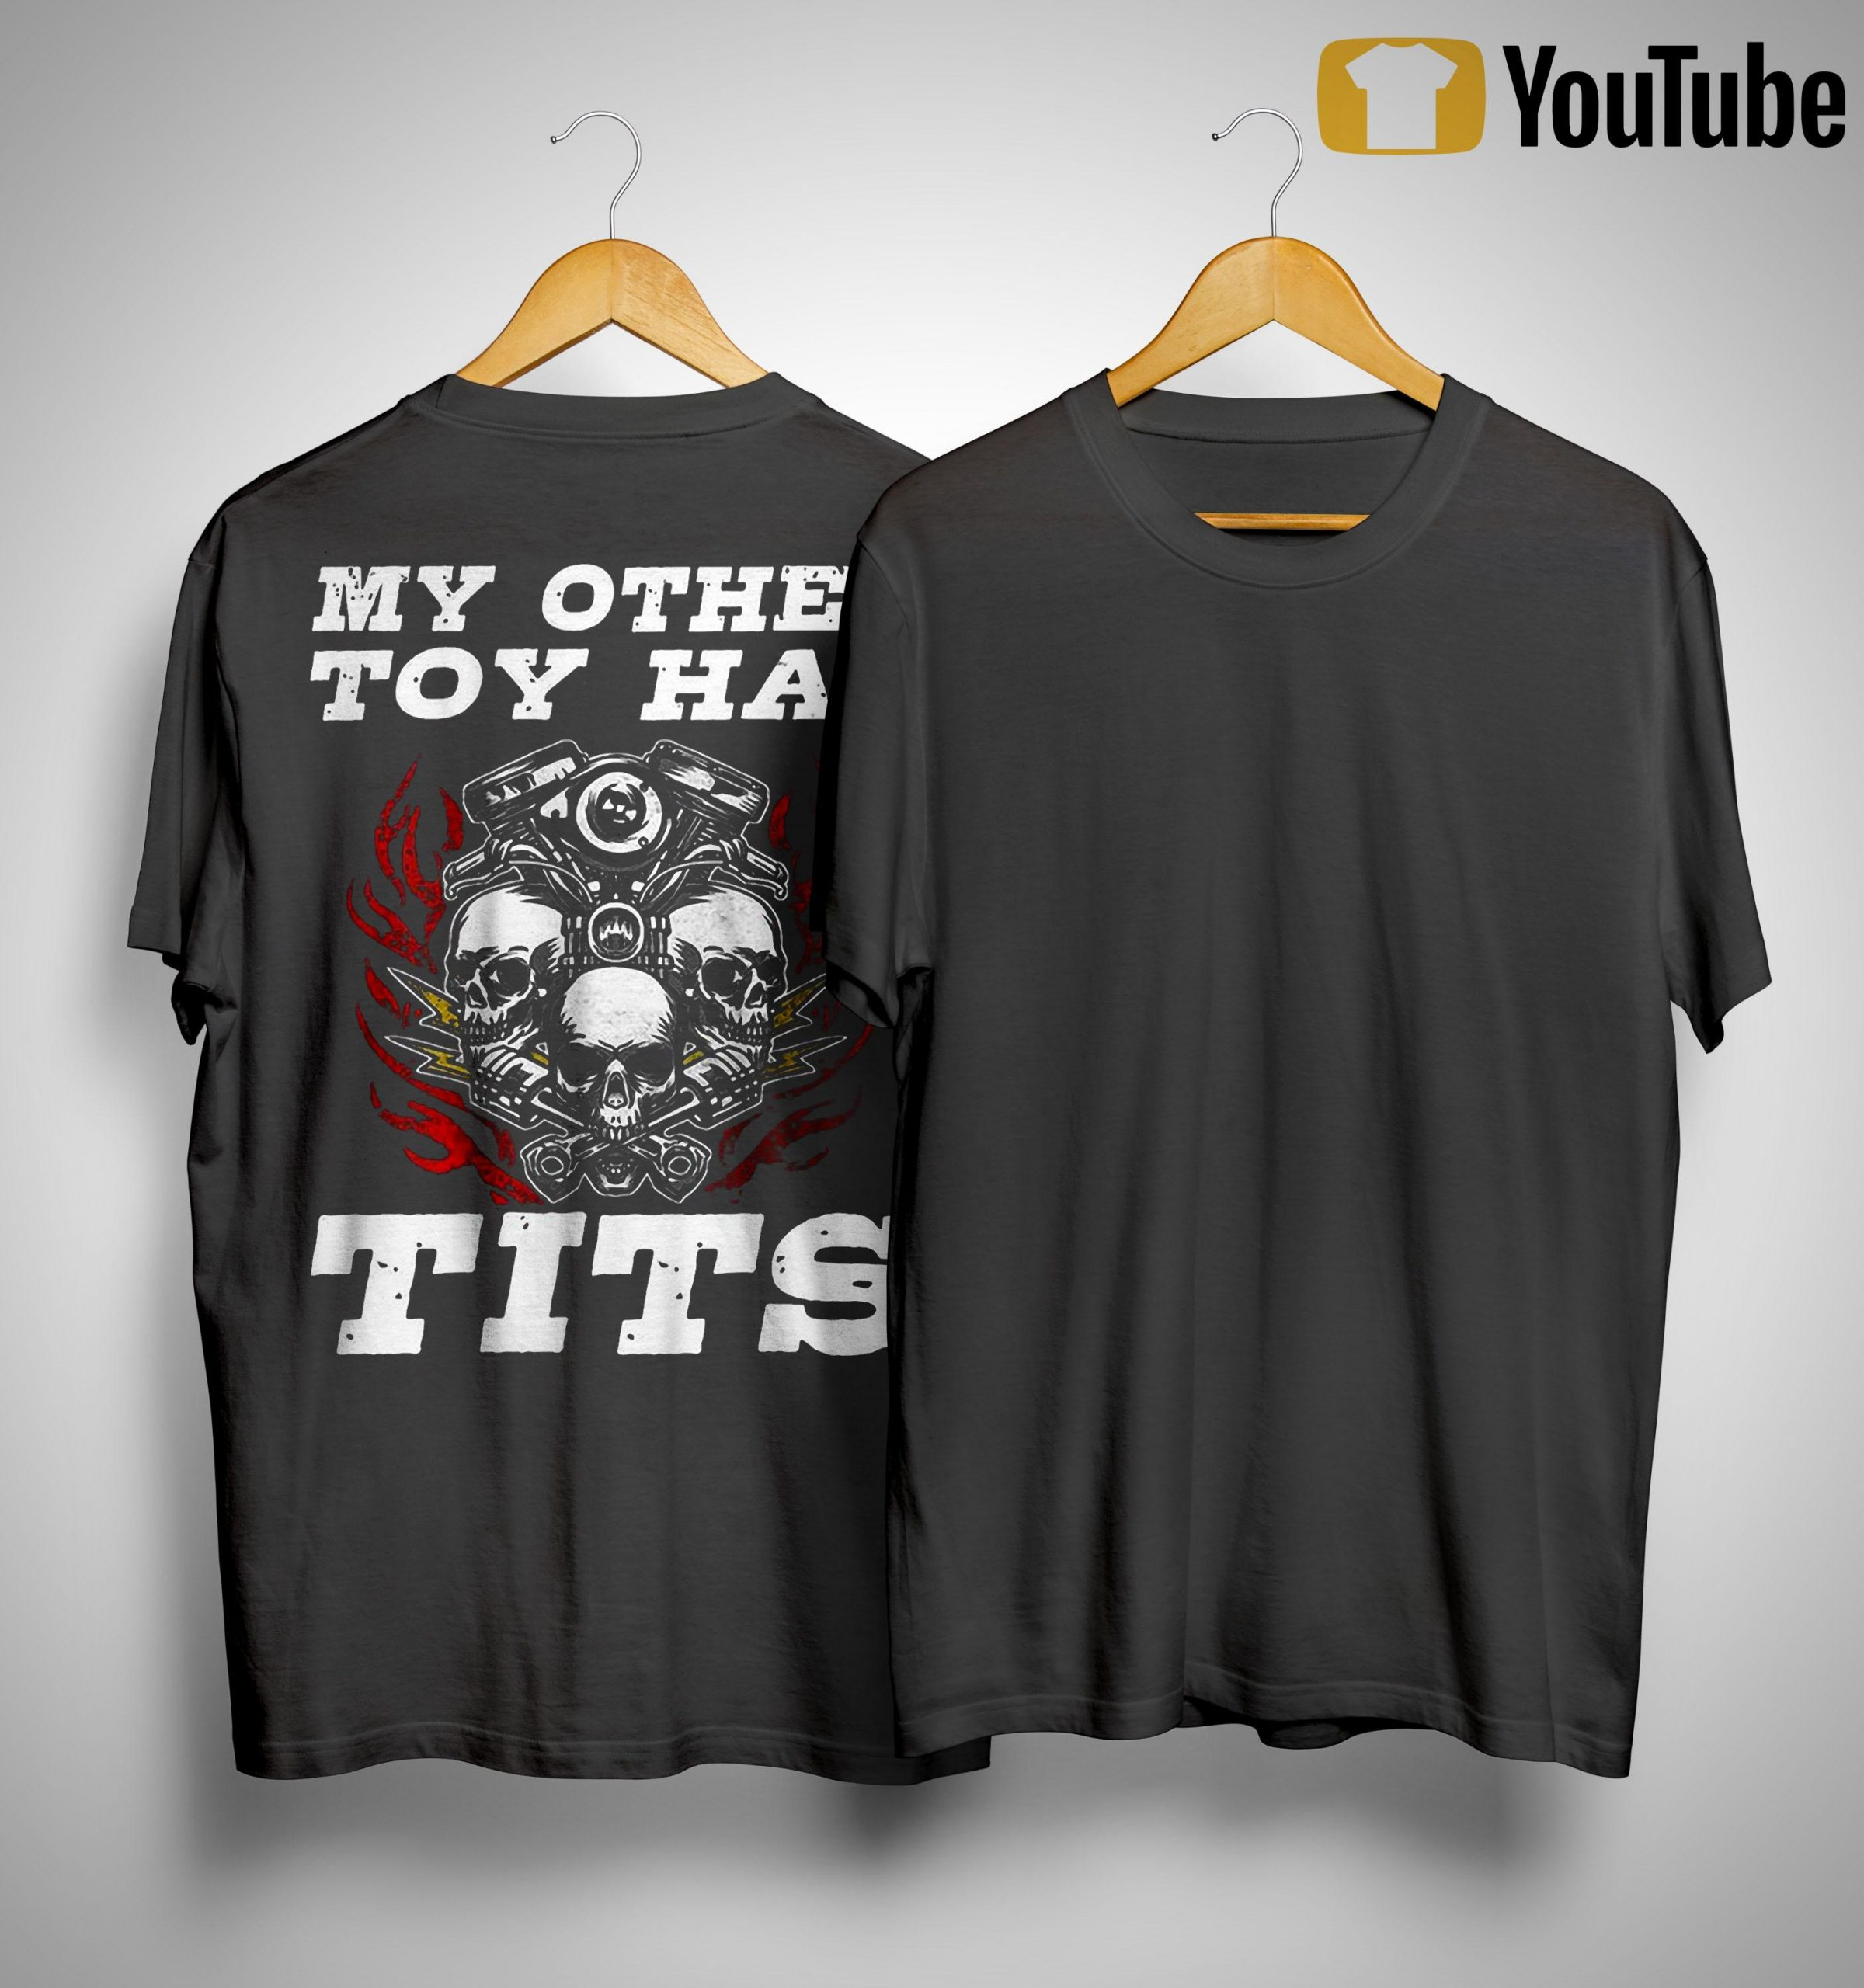 My Other Toy Has Tits Shirt